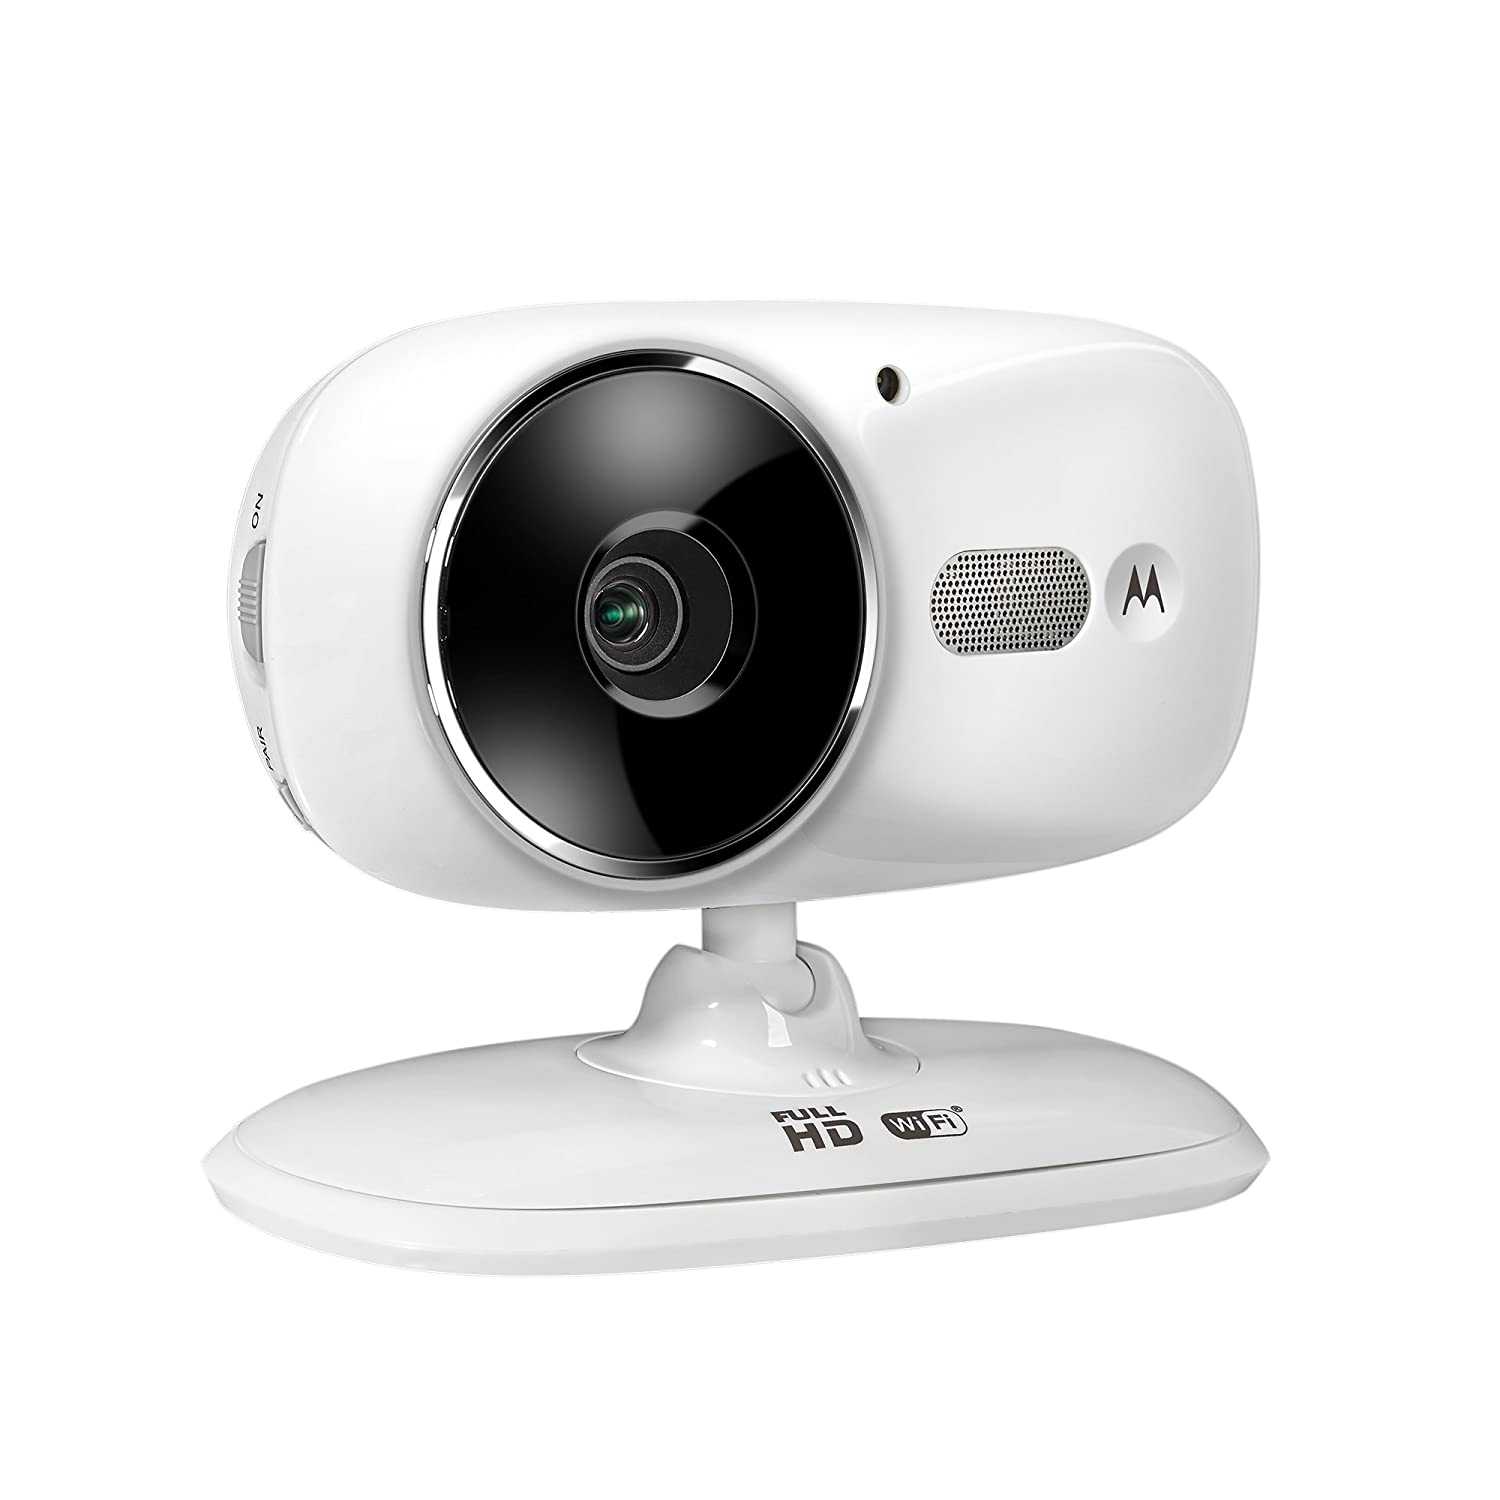 Amazon customer reviews motorola focus66 wi fi hd - Amazon Com Motorola Focus86 Wi Fi Hd Home Video Camera With Digital Zoom White Camera Photo